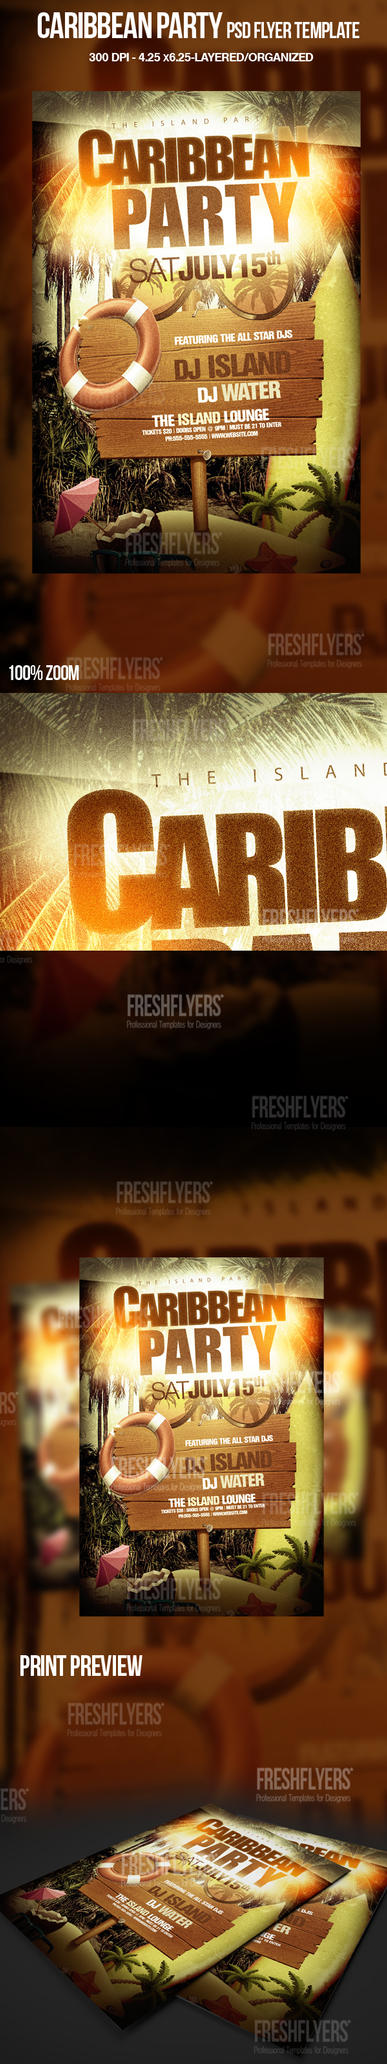 Caribbean Party Flyer Template by ImperialFlyers on DeviantArt